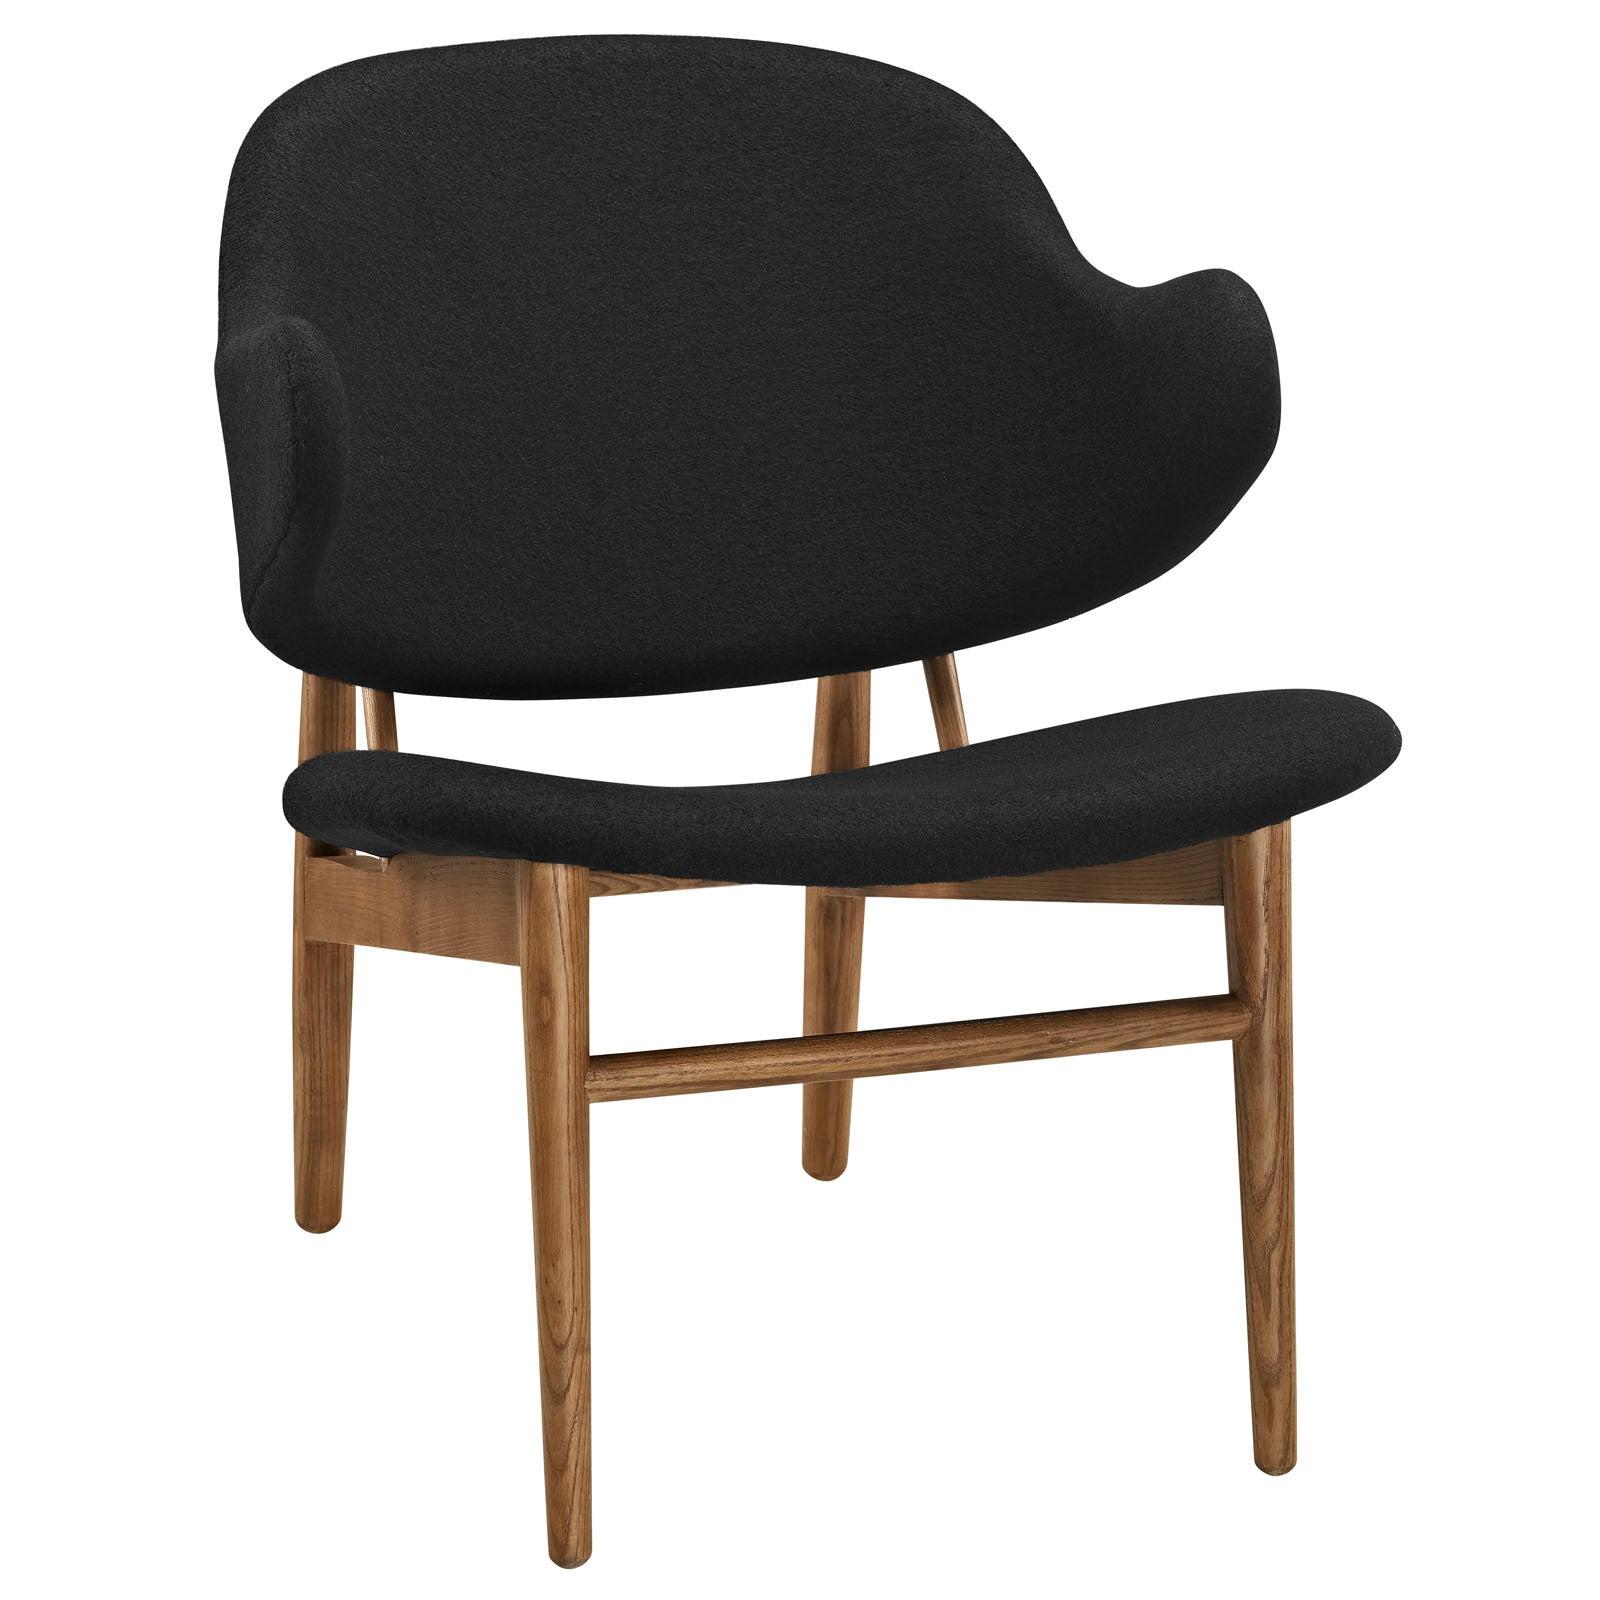 mid century modern furniture reproductions – Modern House